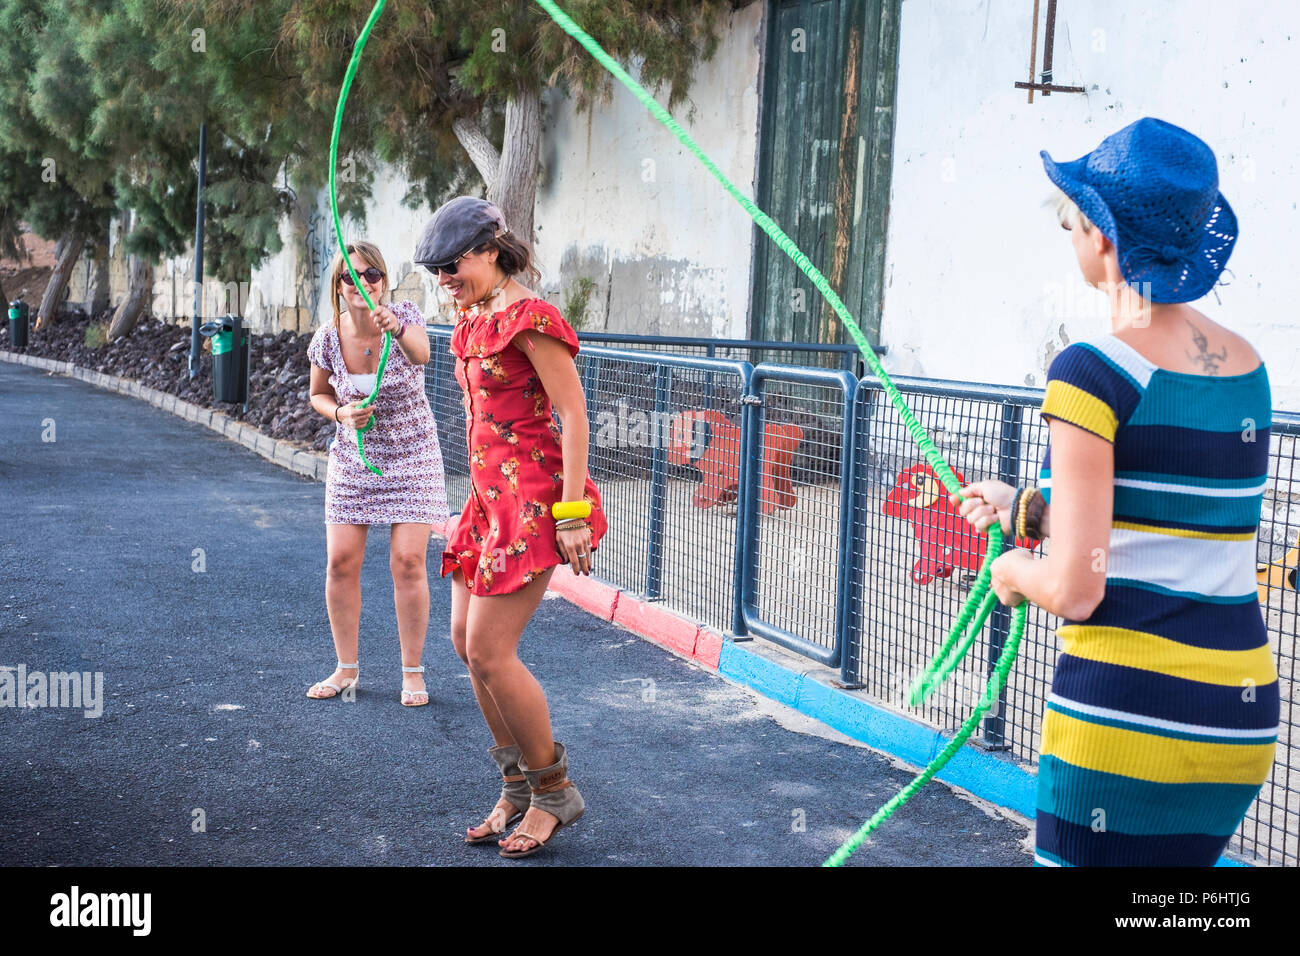 group of women people having fun playing jumping a cord together like children. feeling young and play outdoor. - Stock Image